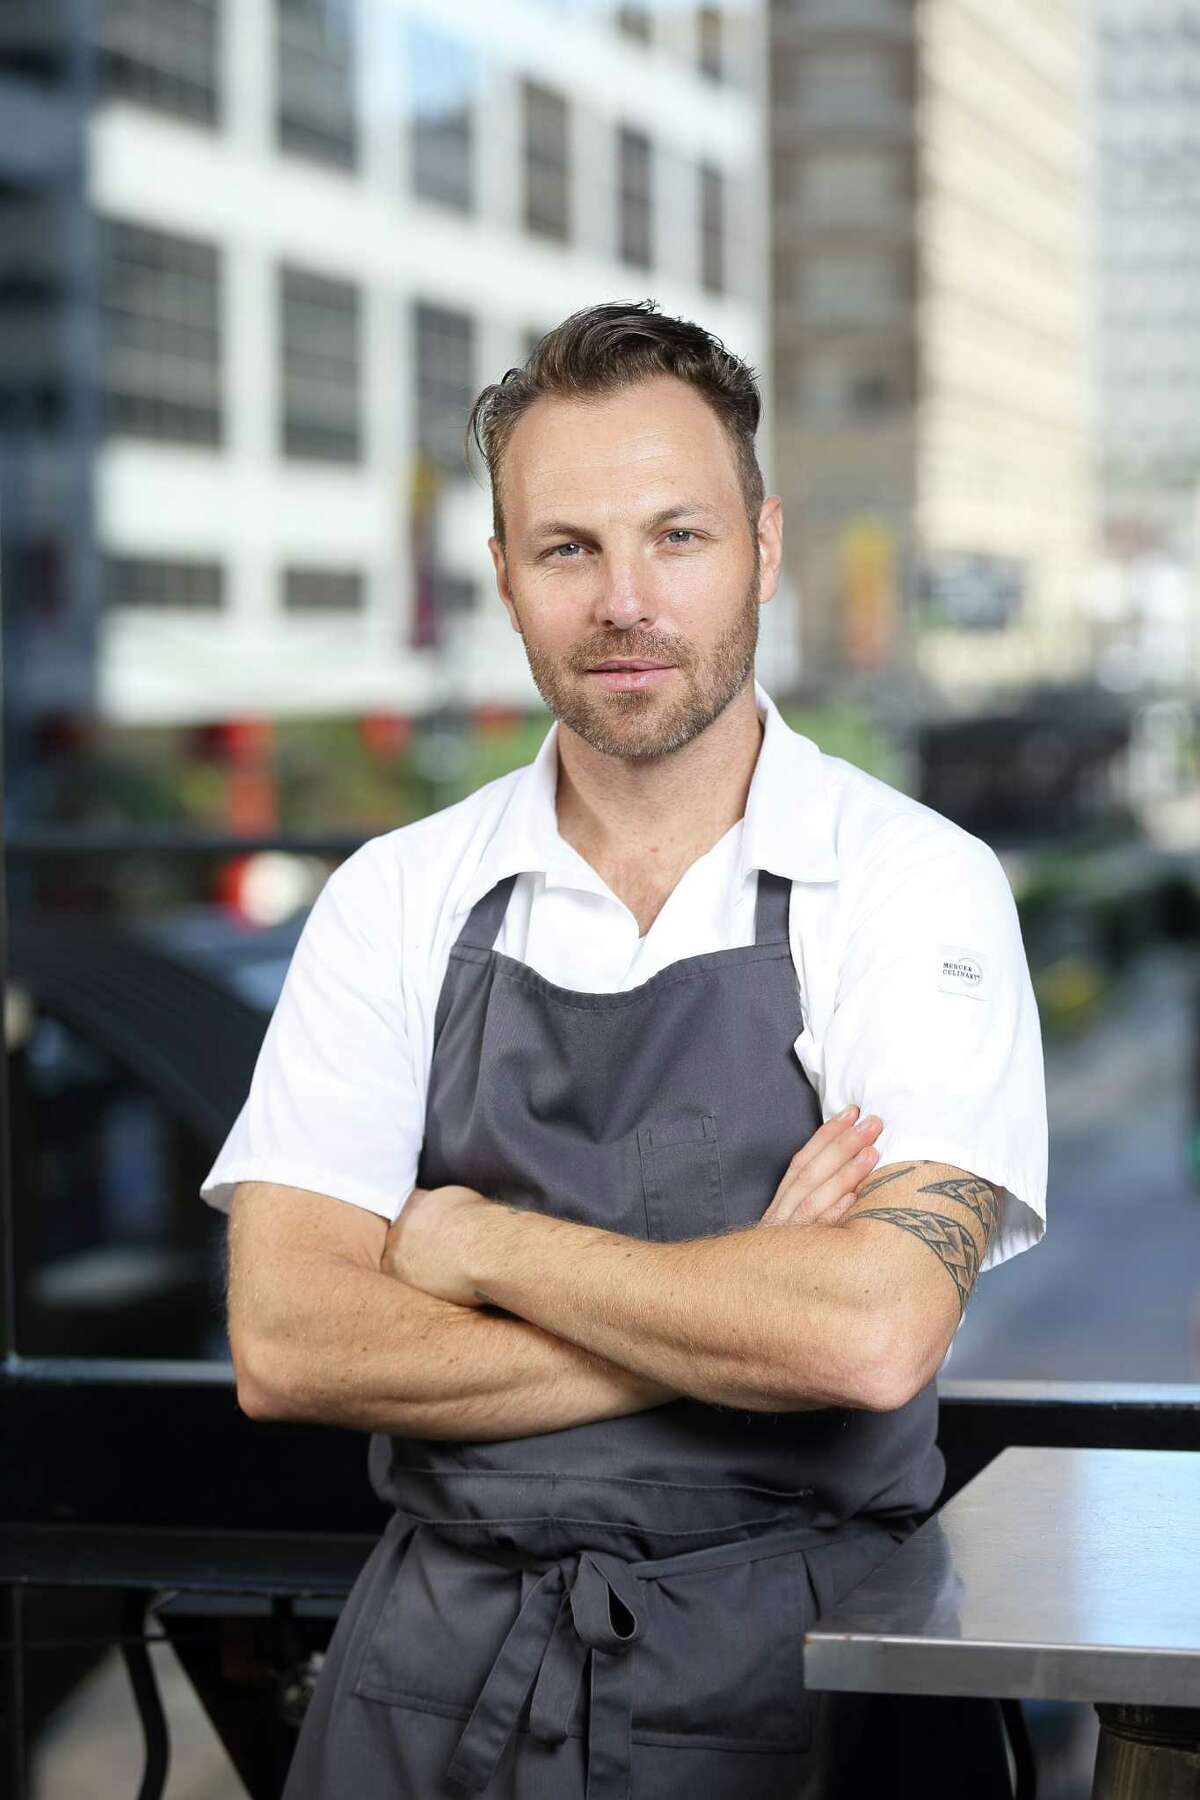 Ivan Giani is the new chef de cuisine at Springbok restaurant and bar in downtown Houston.